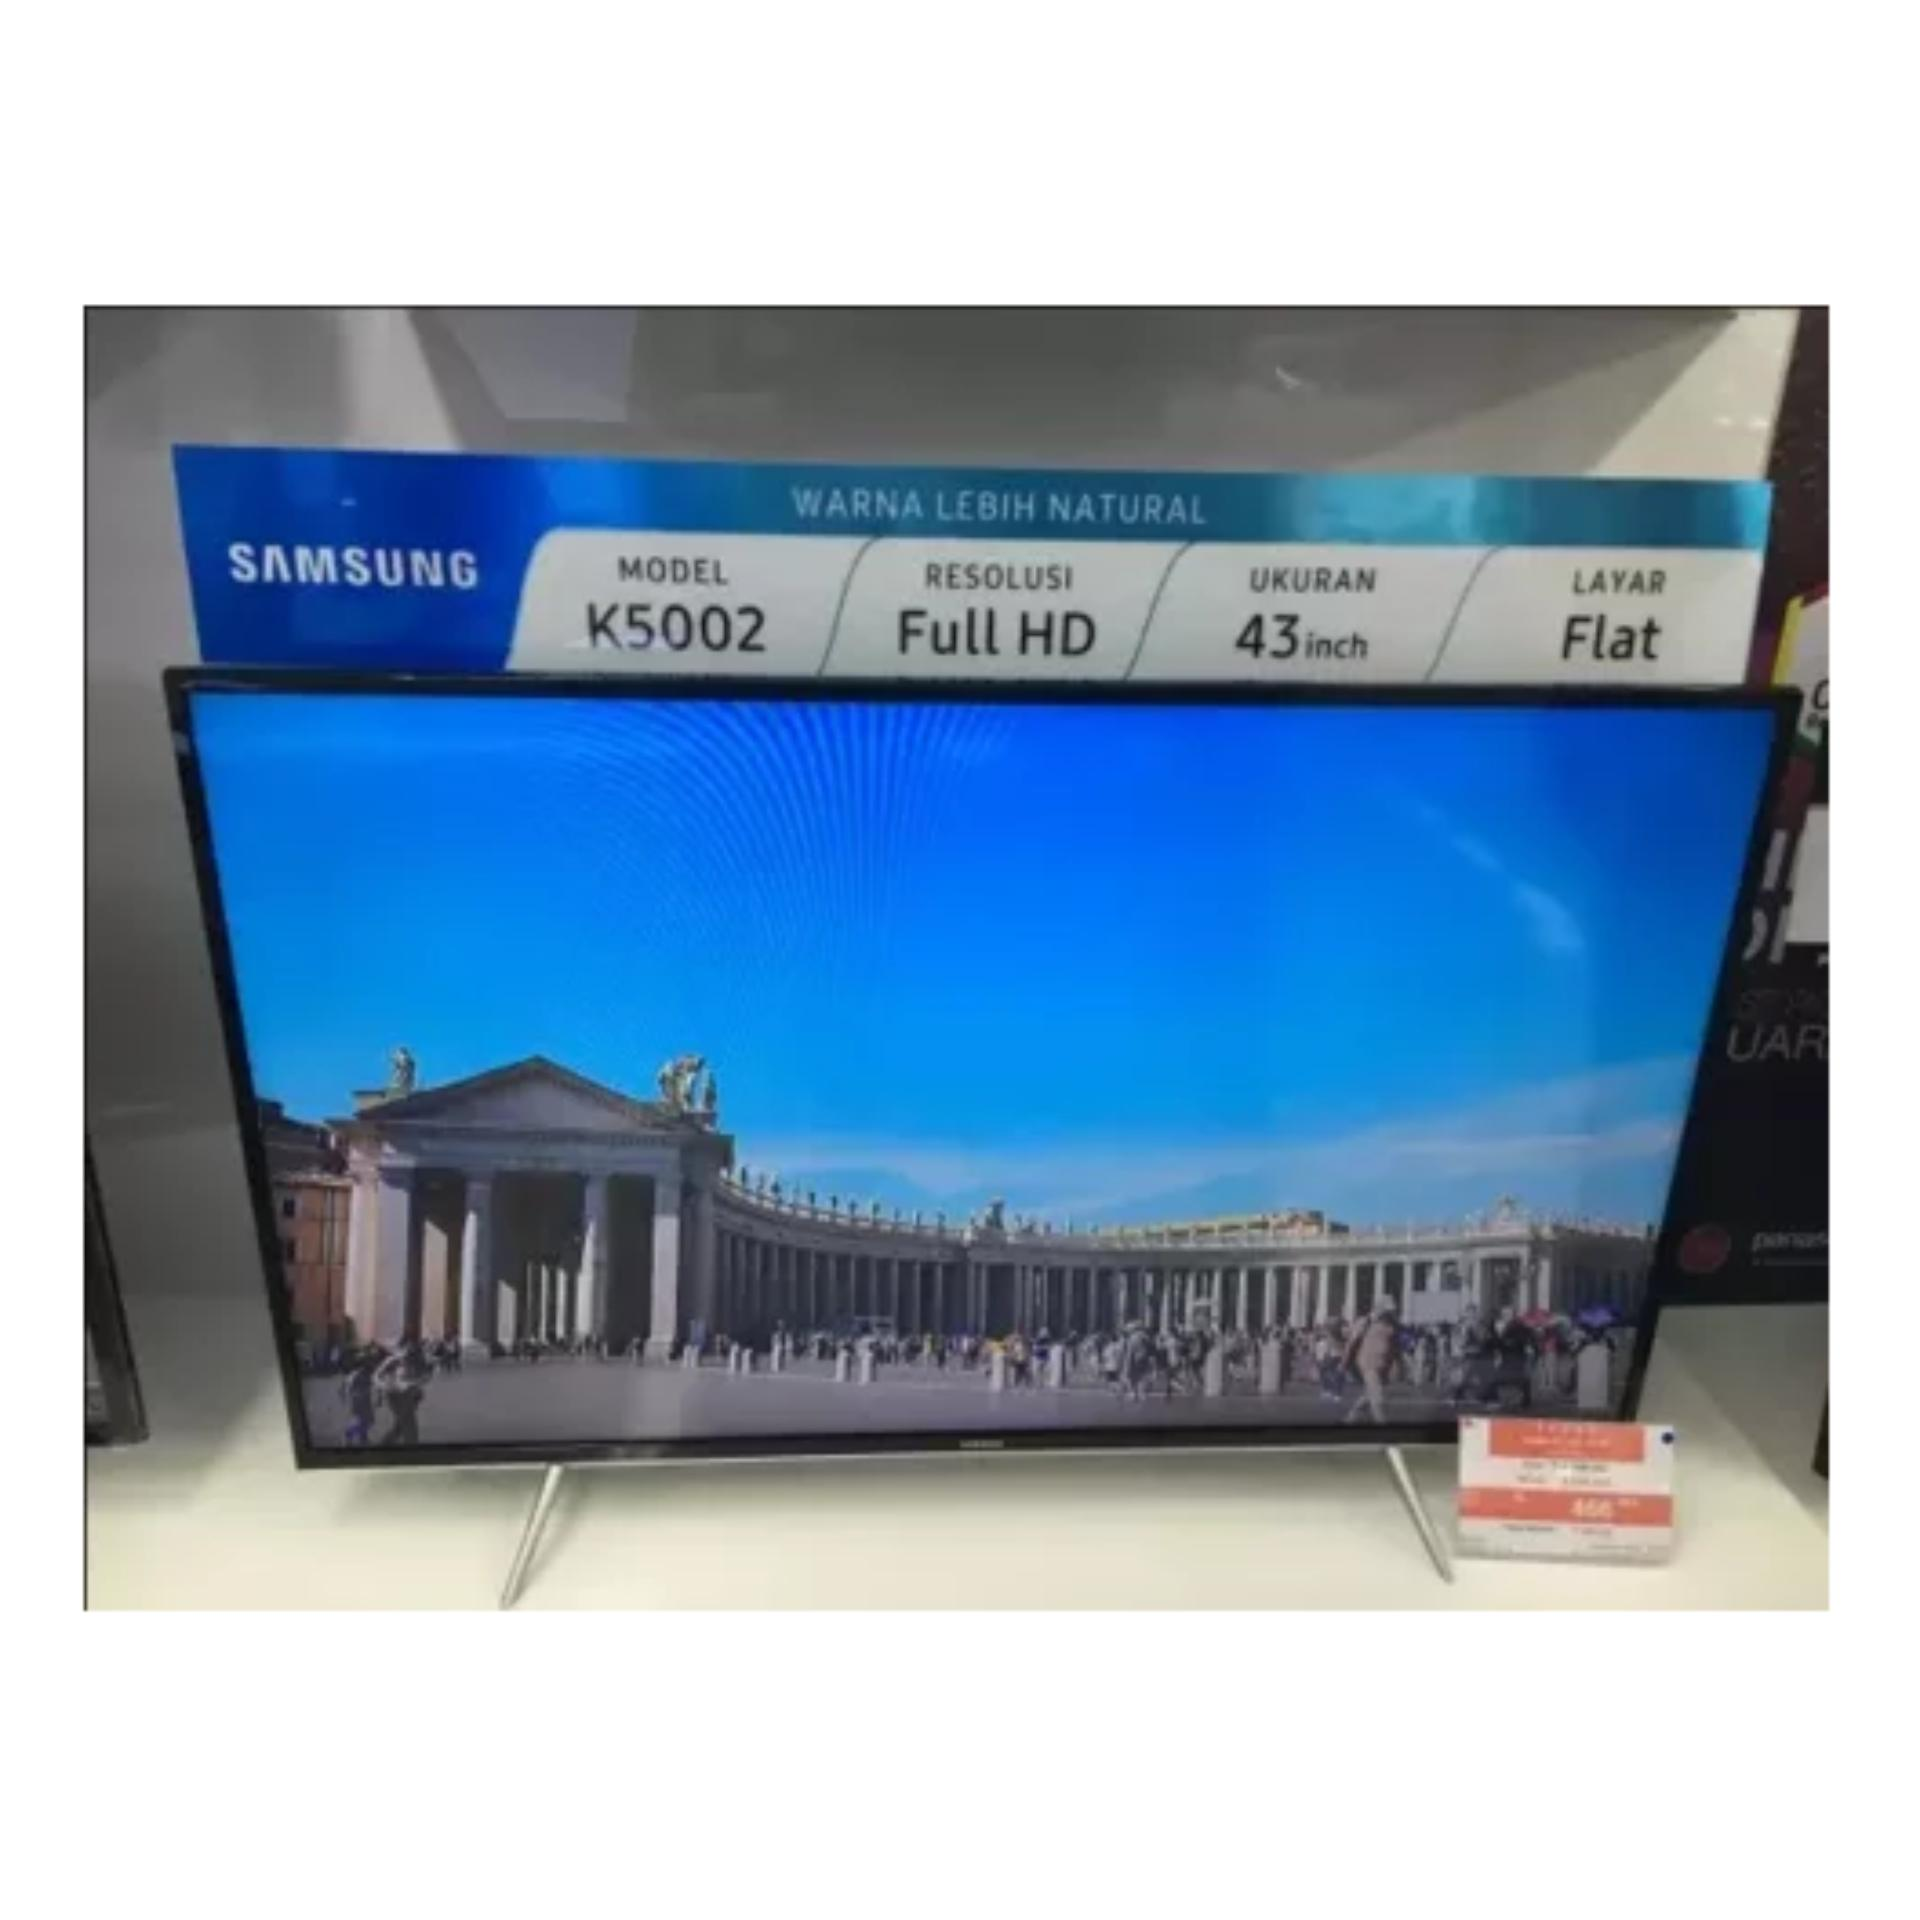 Samsung 43 inch LED Digital Full HD TV - Hitam (Model UA43K5002)